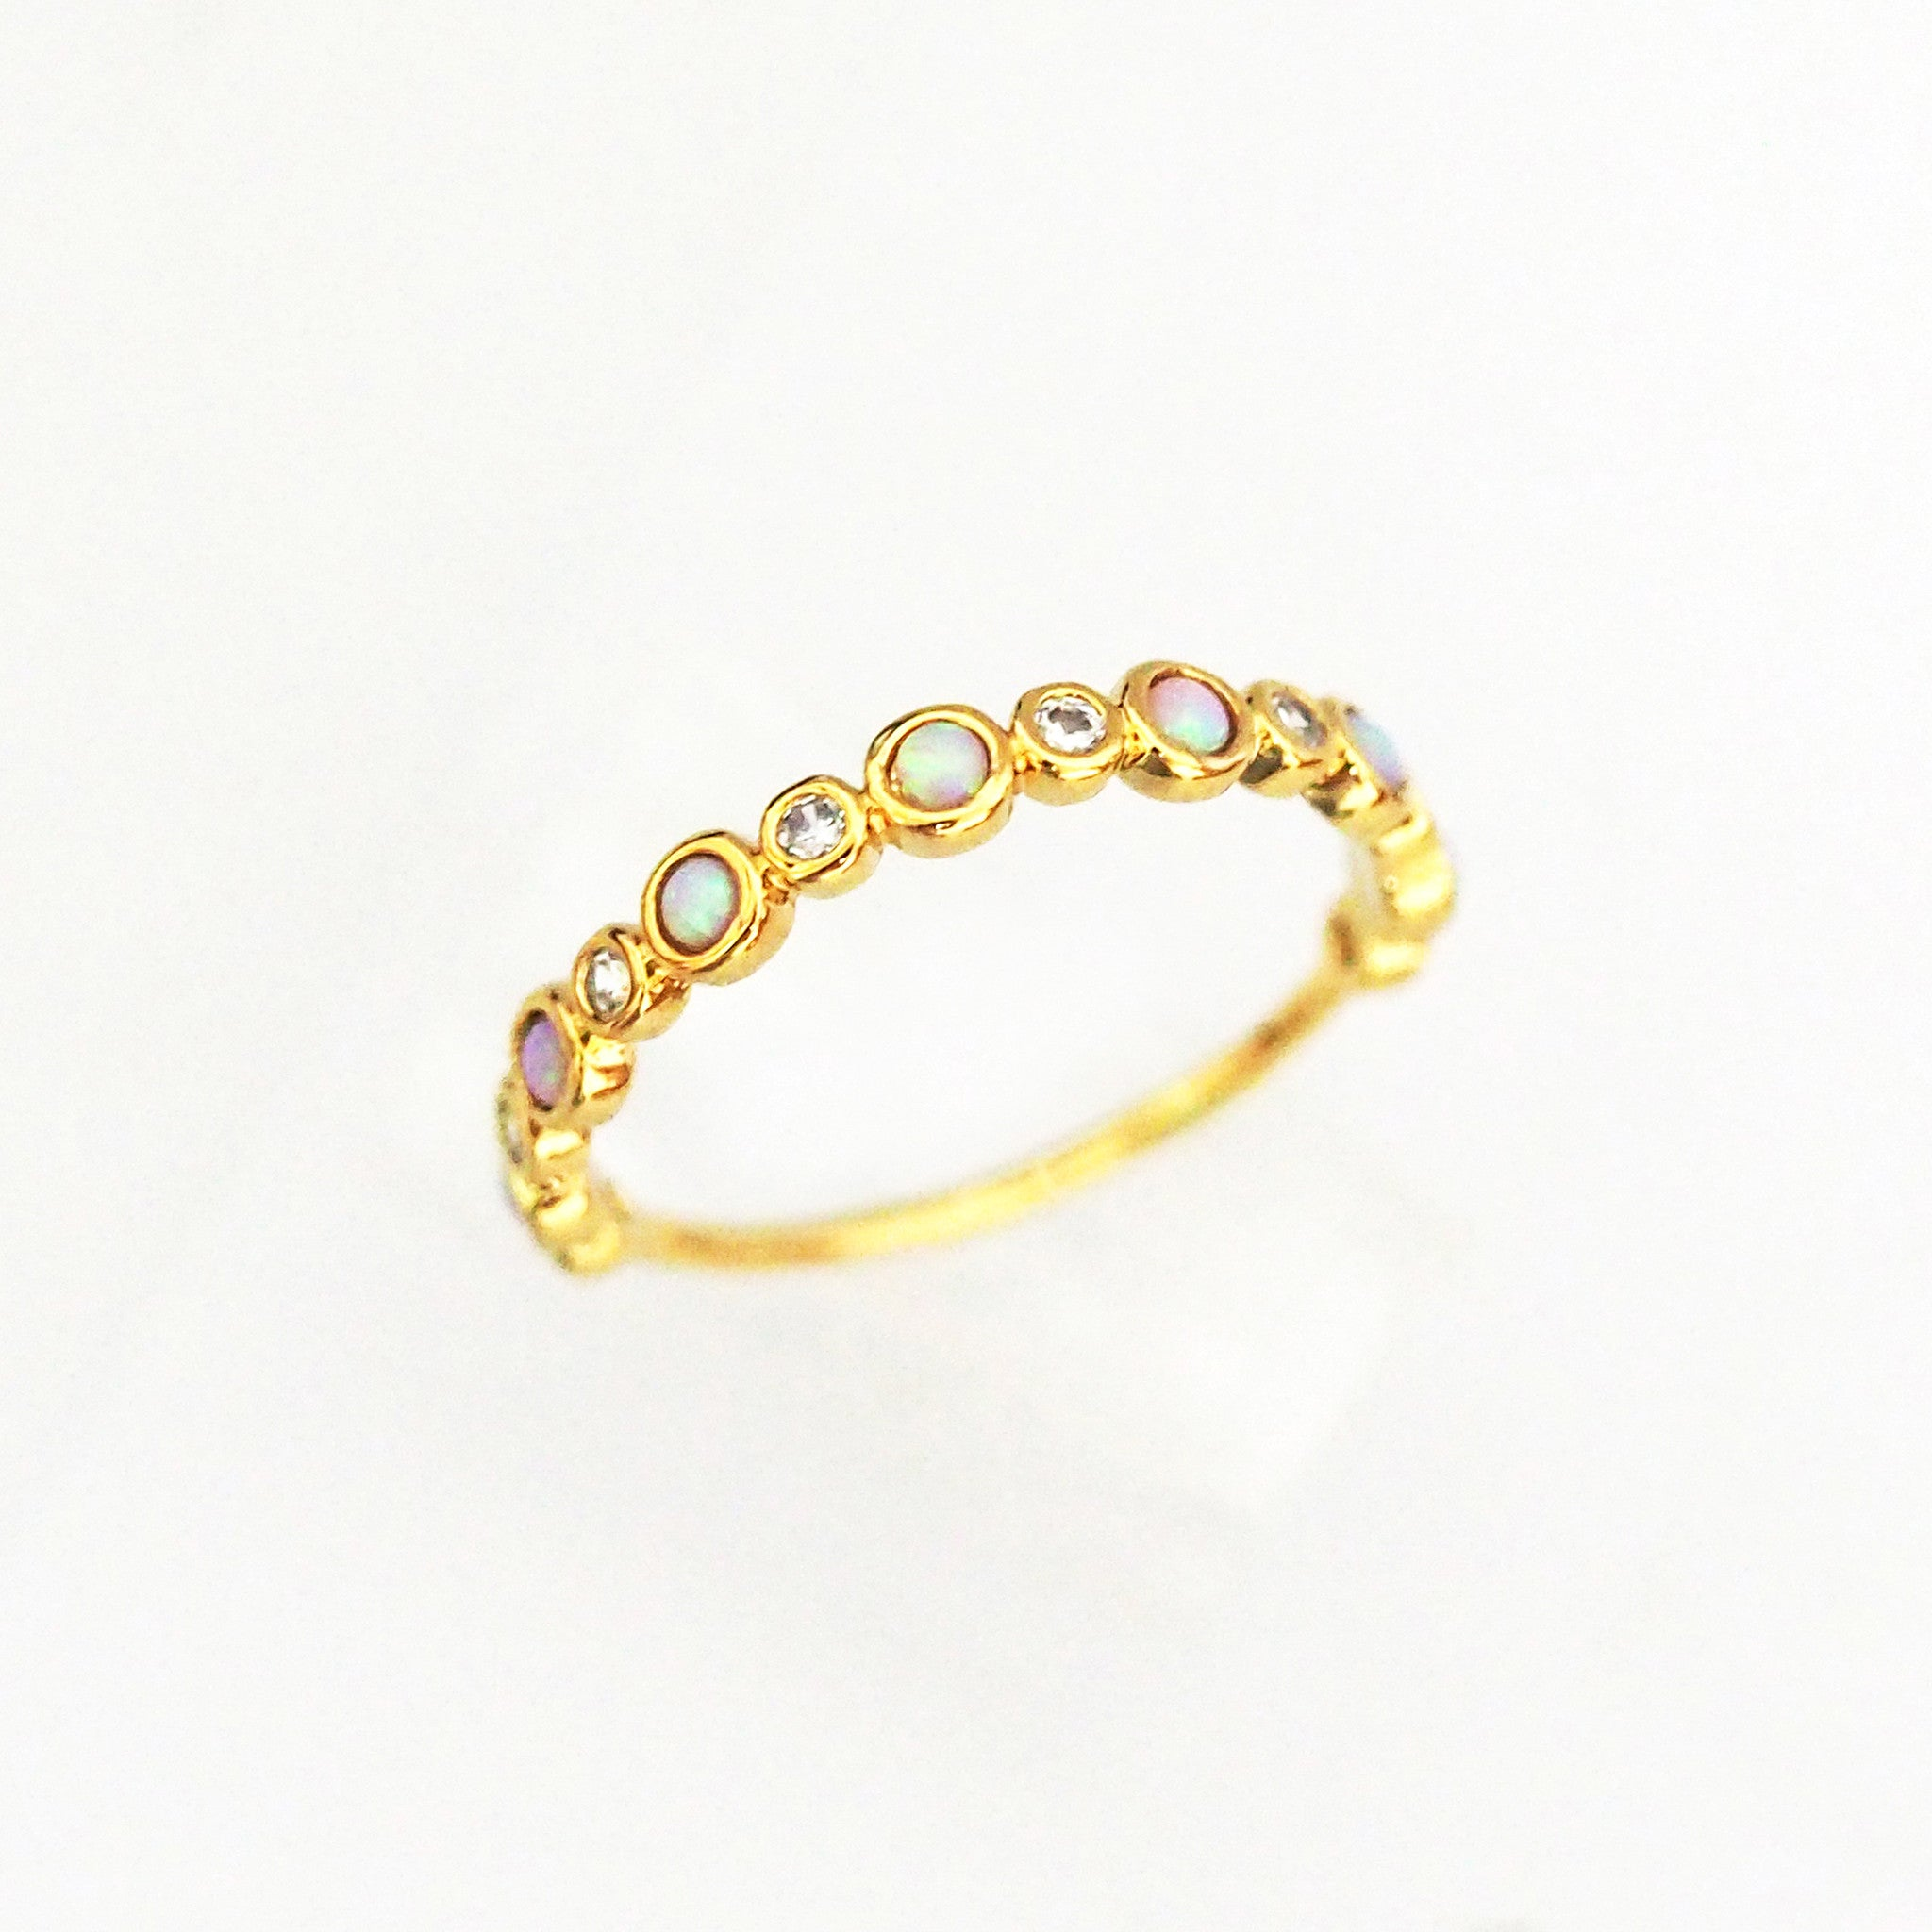 products ehsani small melody ring erything gold rings collections sml all nugget